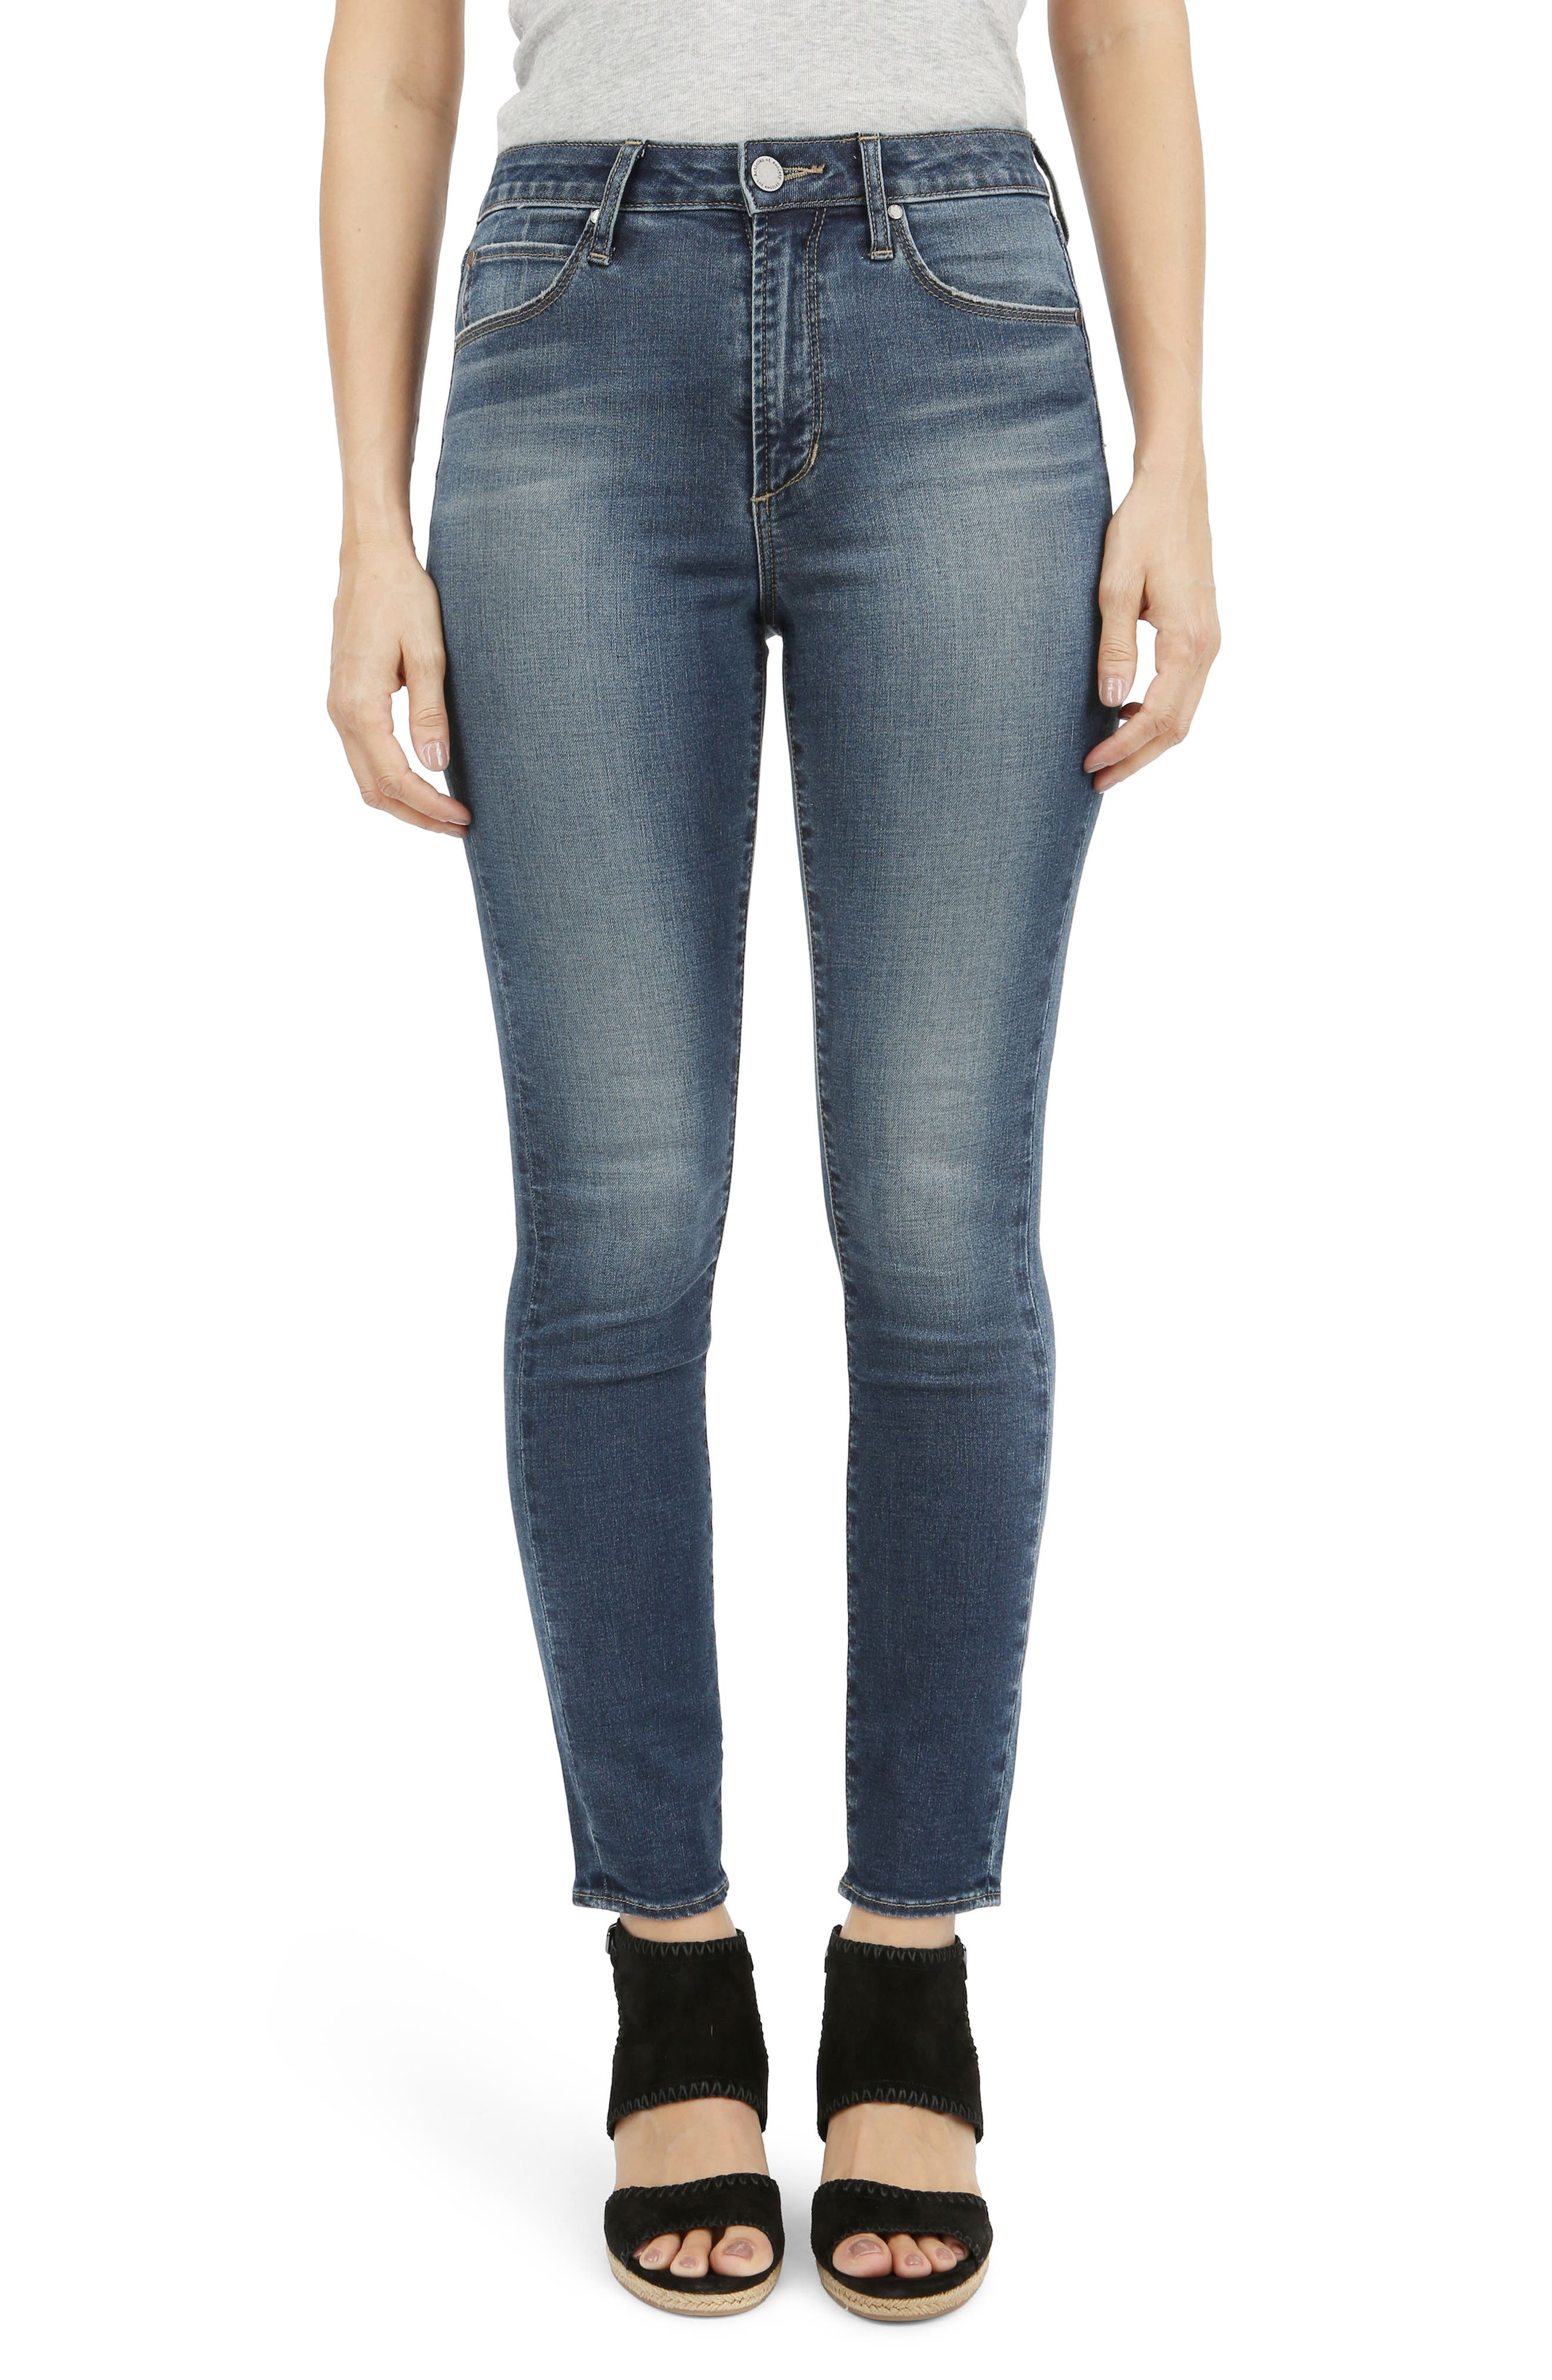 Alternate Image 1 Selected - Articles of Society Heather High Waist Skinny Jeans